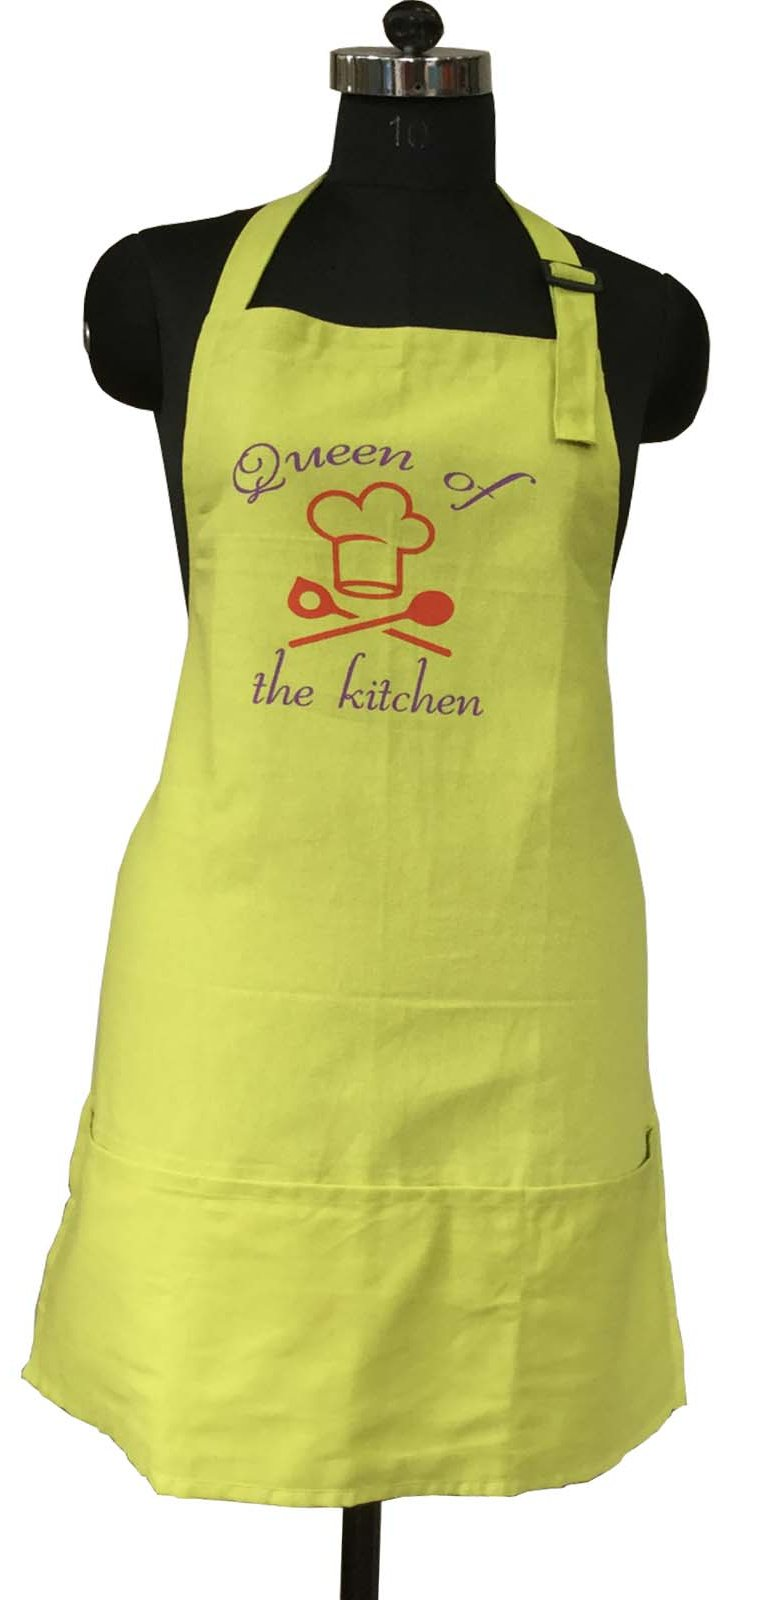 Lushomes Cotton Witty Green Queen of the Kitchen Apron